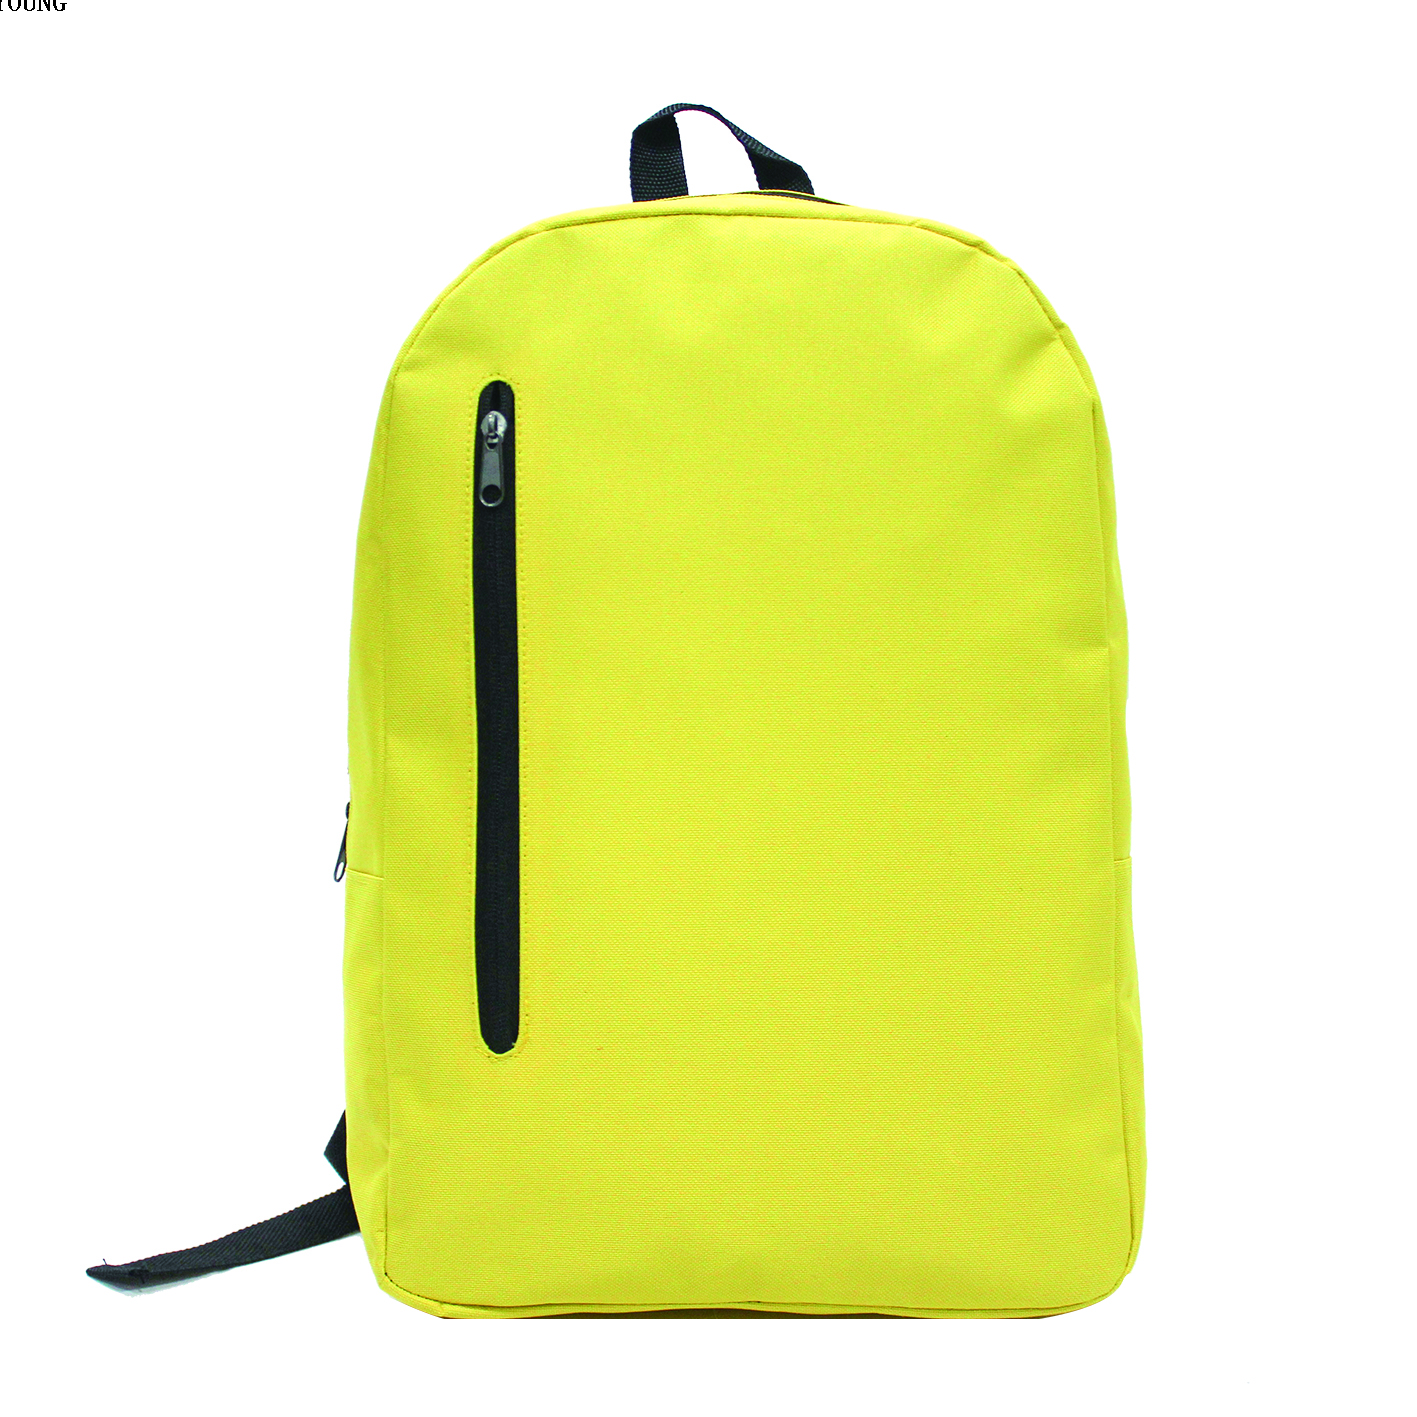 2020 Personalized Kids Cheap Promotional Backpack HY-A114